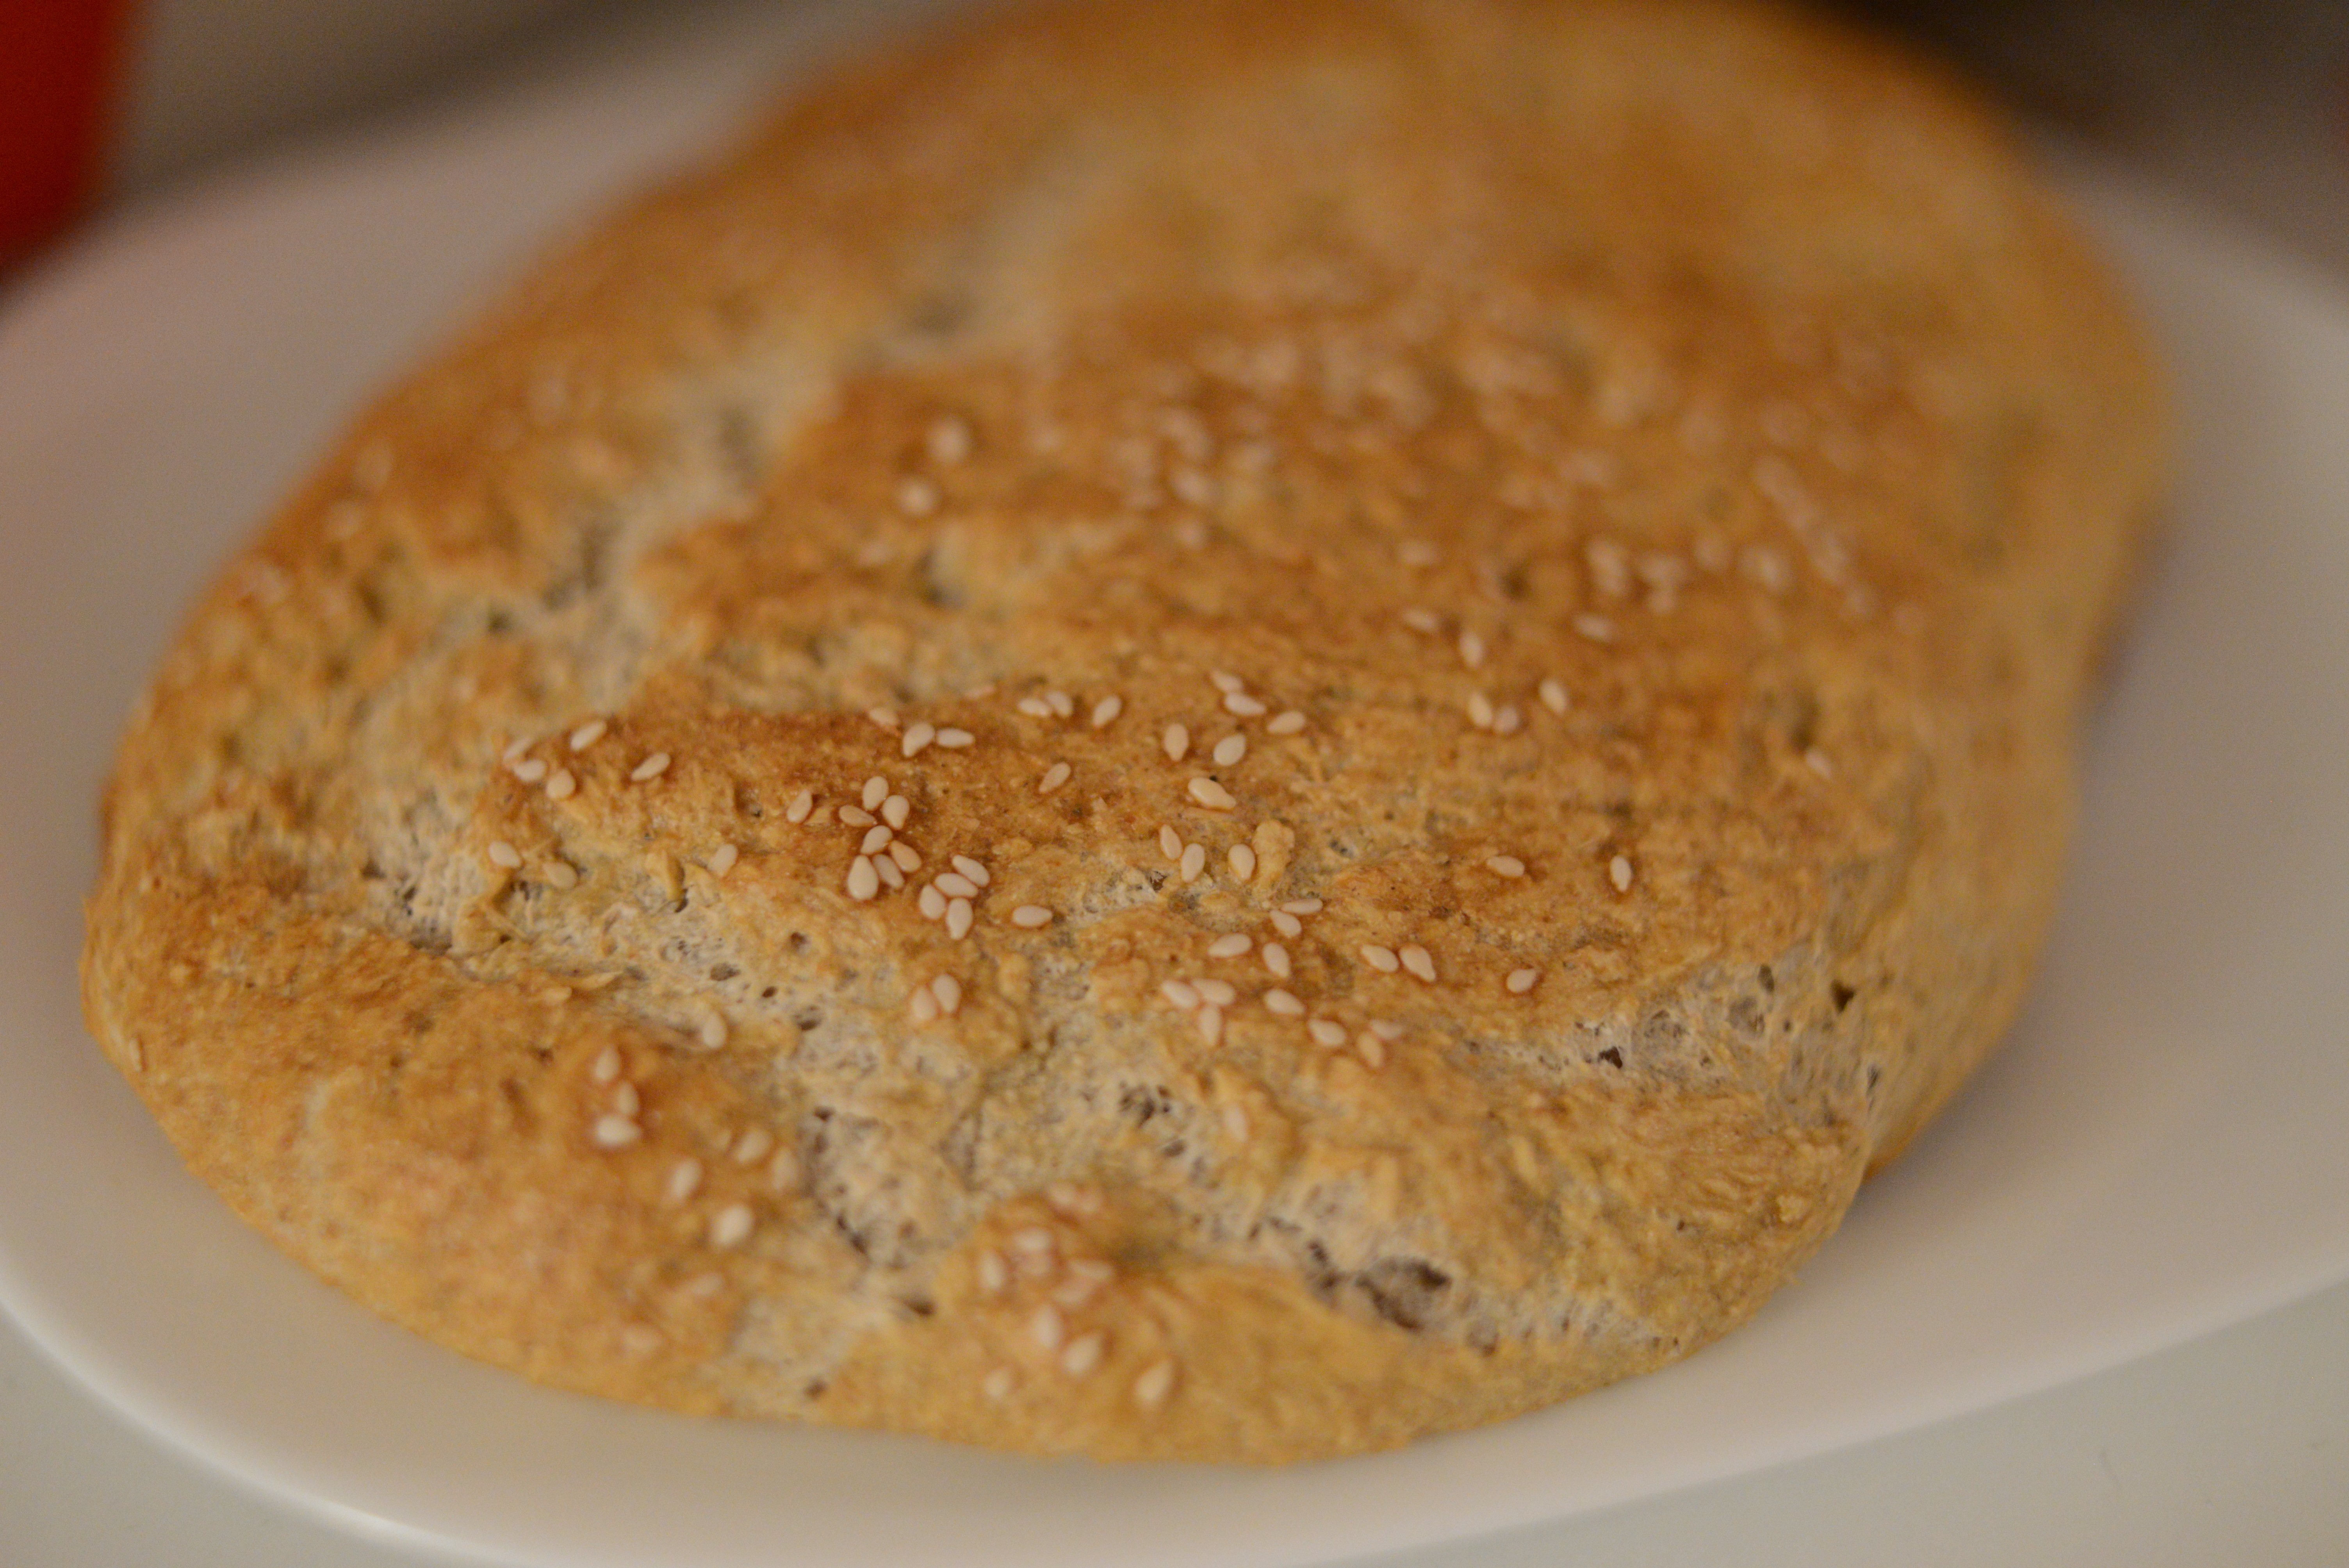 Barley Bread I Wasn T Particularly Excited About This One But It Turned Out Really Well And The Barley Hulls In The Barley Flour I Used Added Some Nice